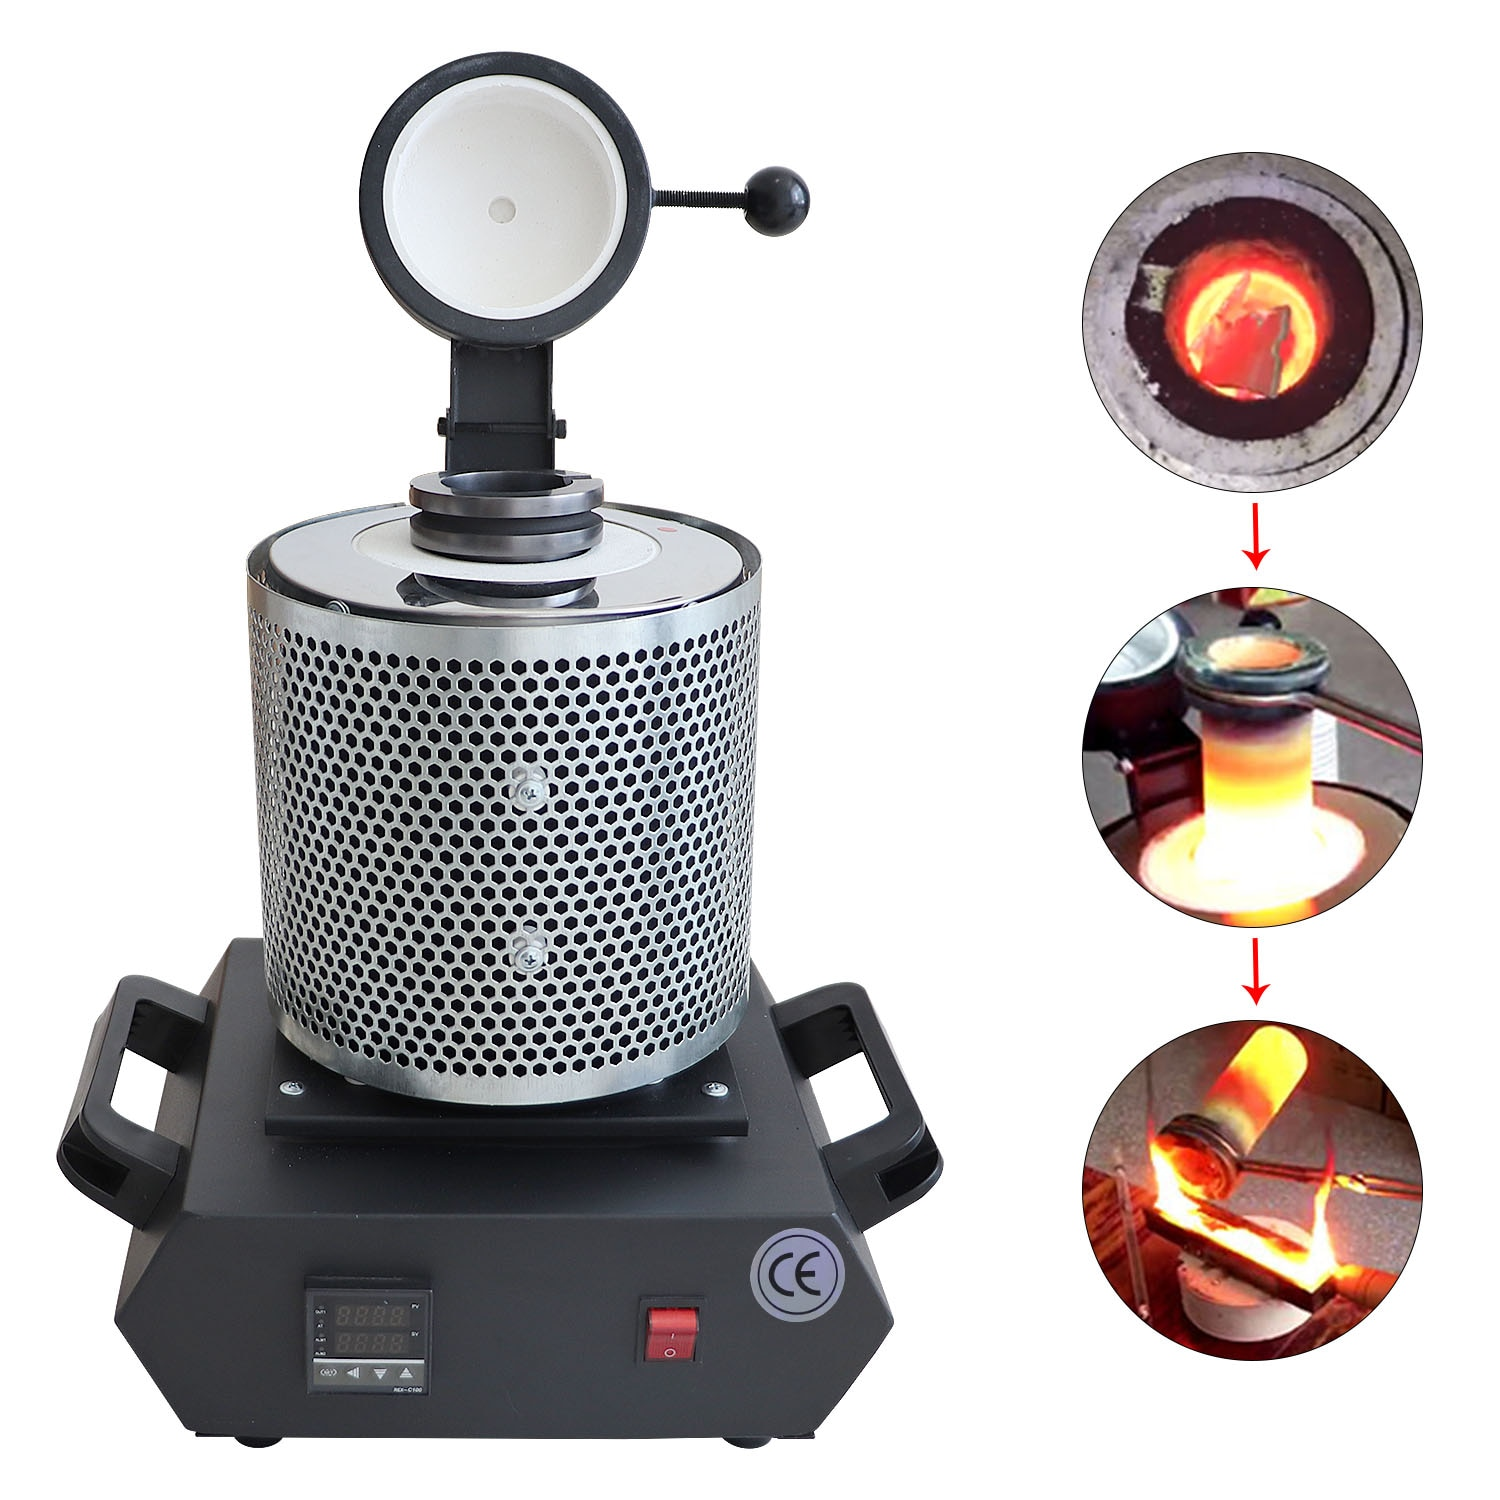 110V/220V New styles Melting Furnace With Net 1-3KG Portable Graphite Crucible Furnace High Temperature Small Metal Melting